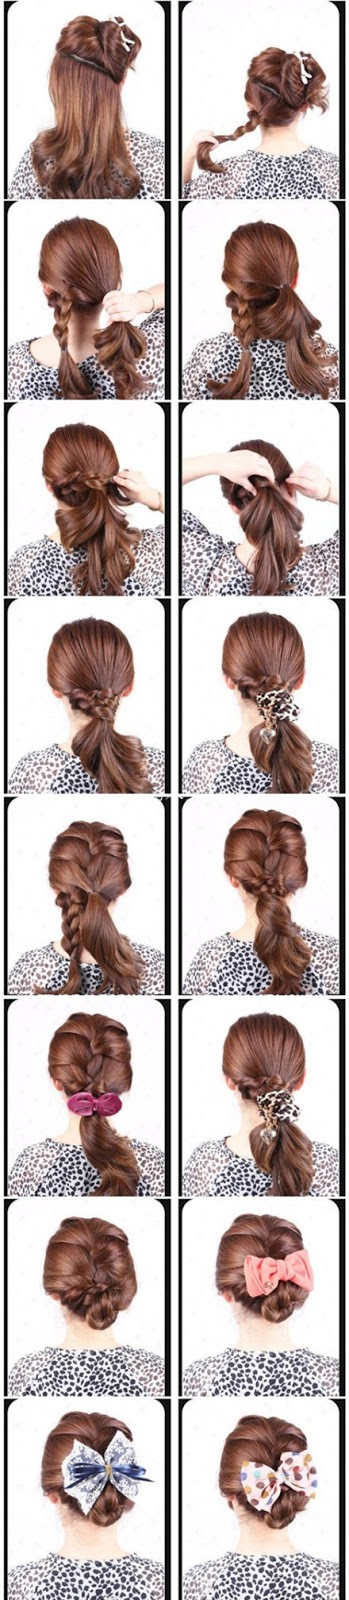 Hairstyle Yourself : DIY-HairStyle-Do+It+Yourself-Hair-Amazing-HairStyle-Style-Fashion ...